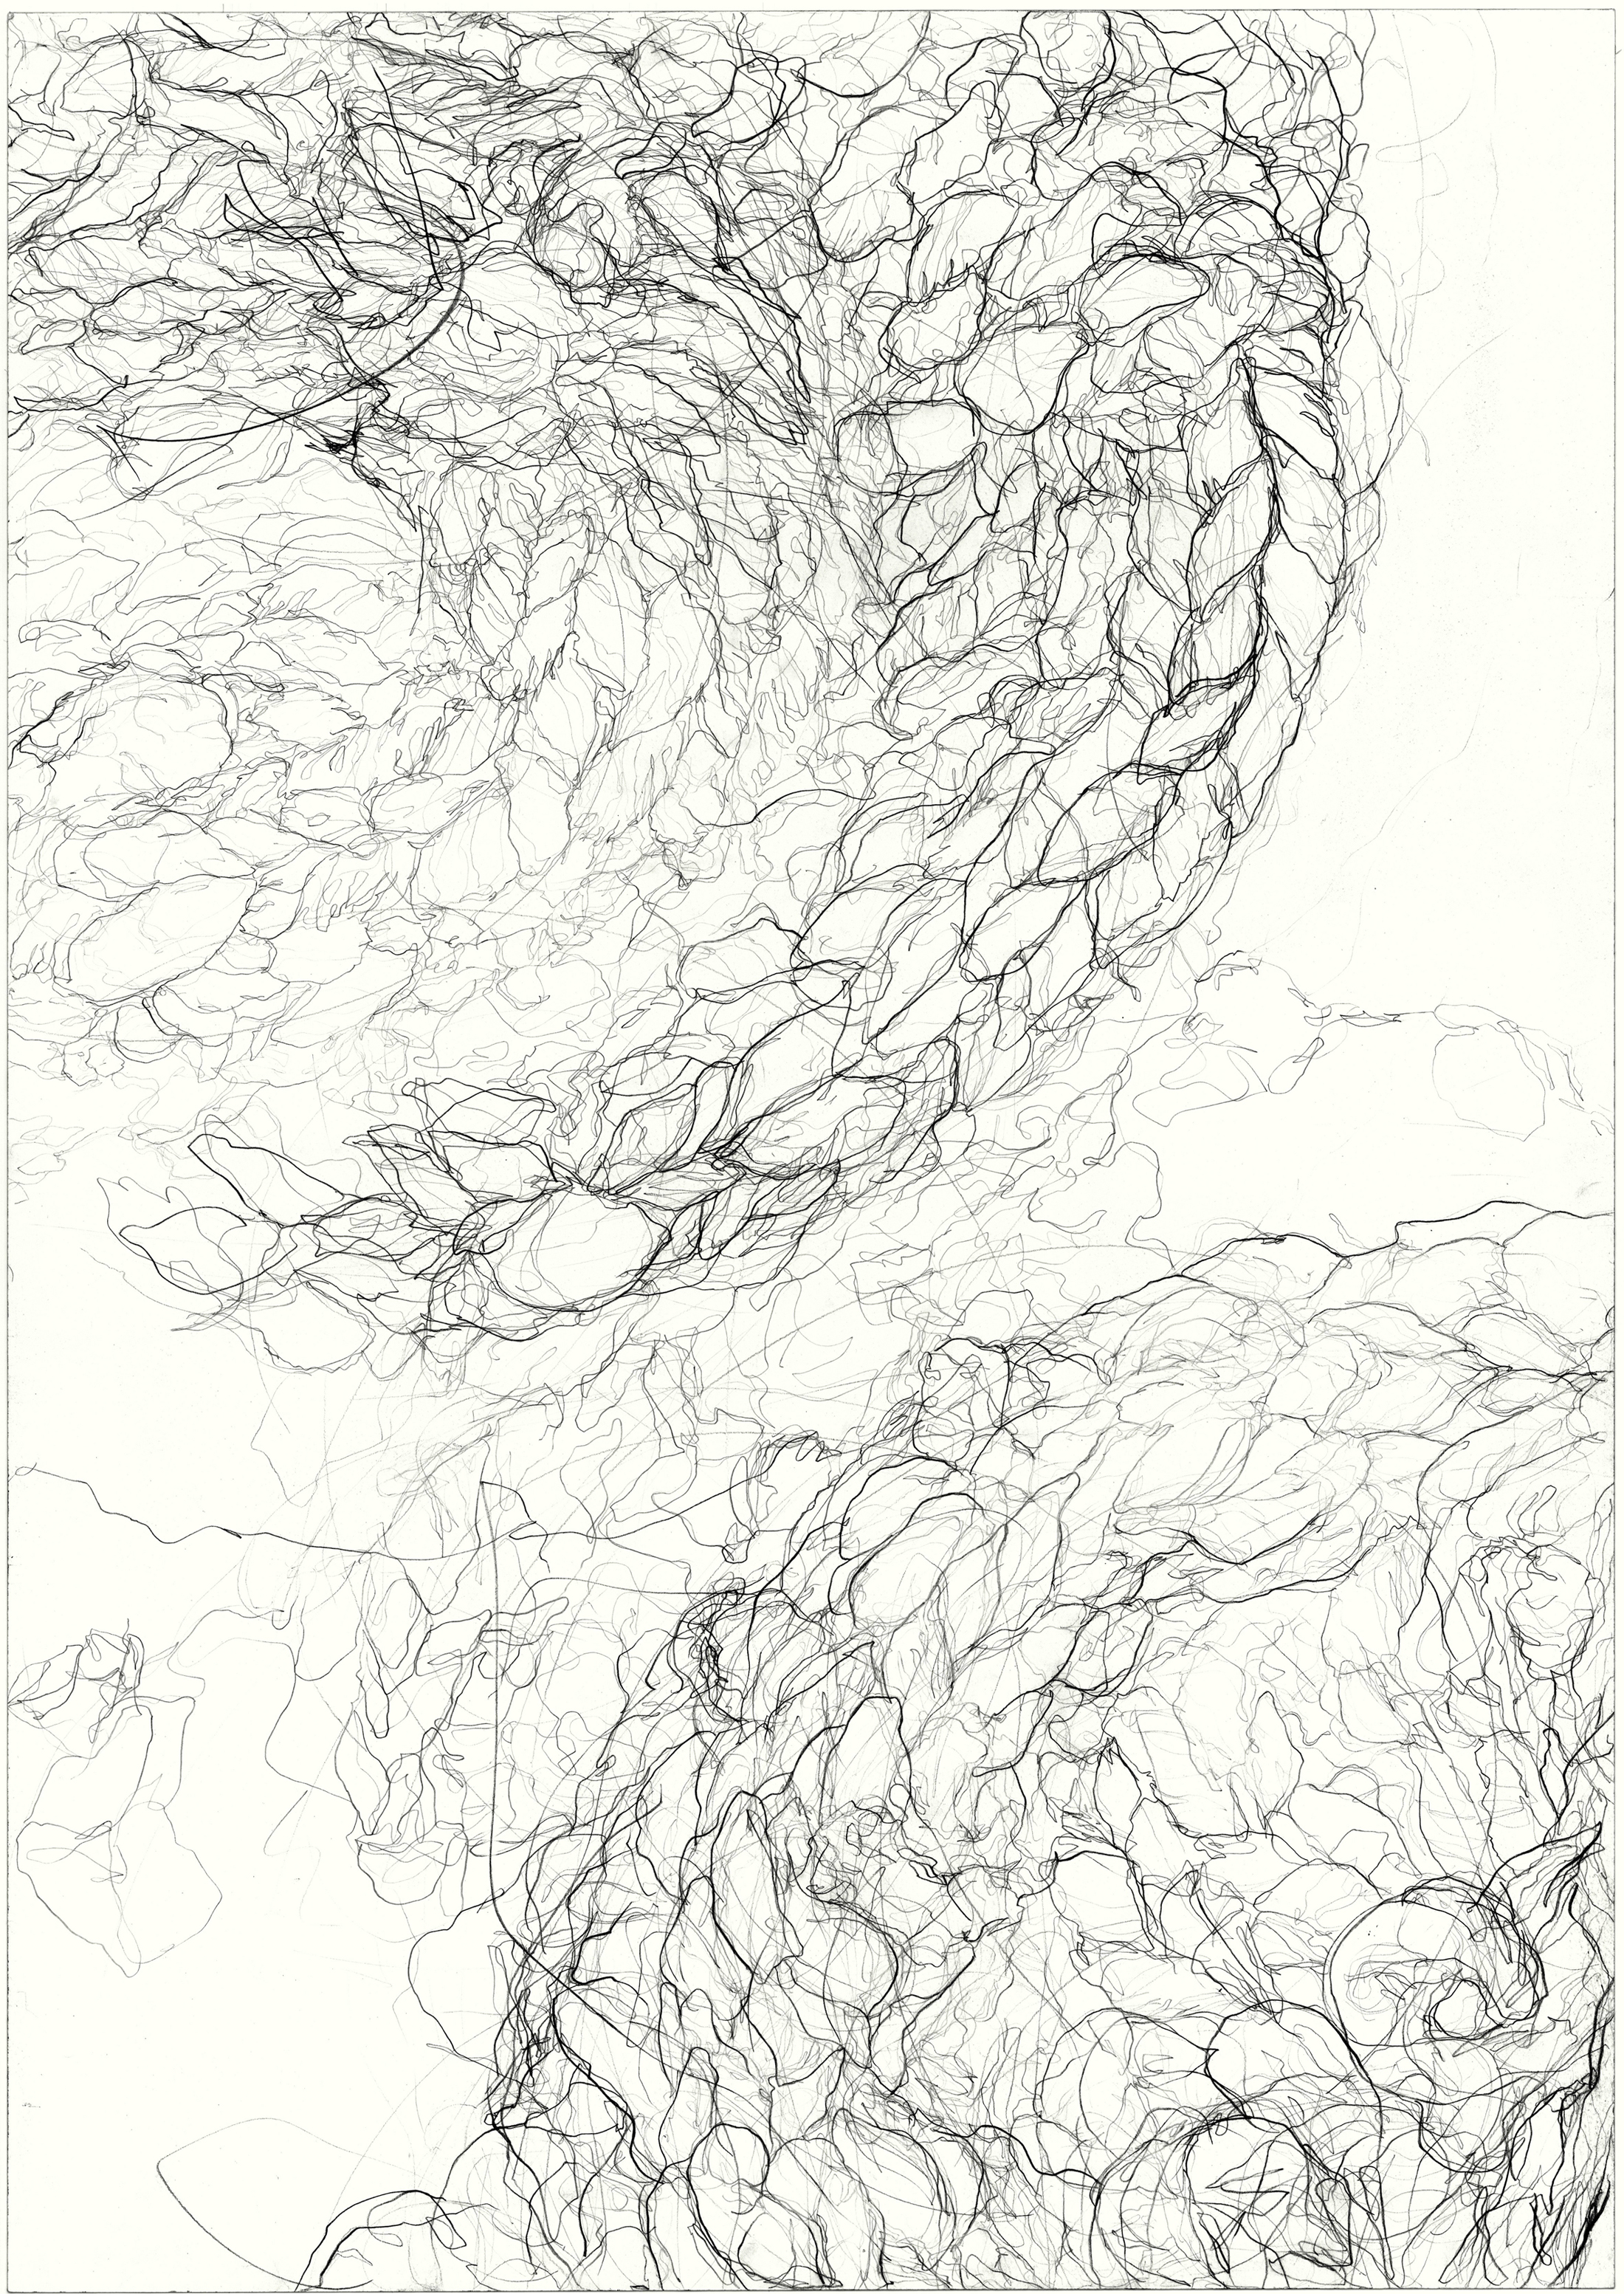 Dyskinesia  2011, pencil on paper, 84.1 cm x 59.5 cm.